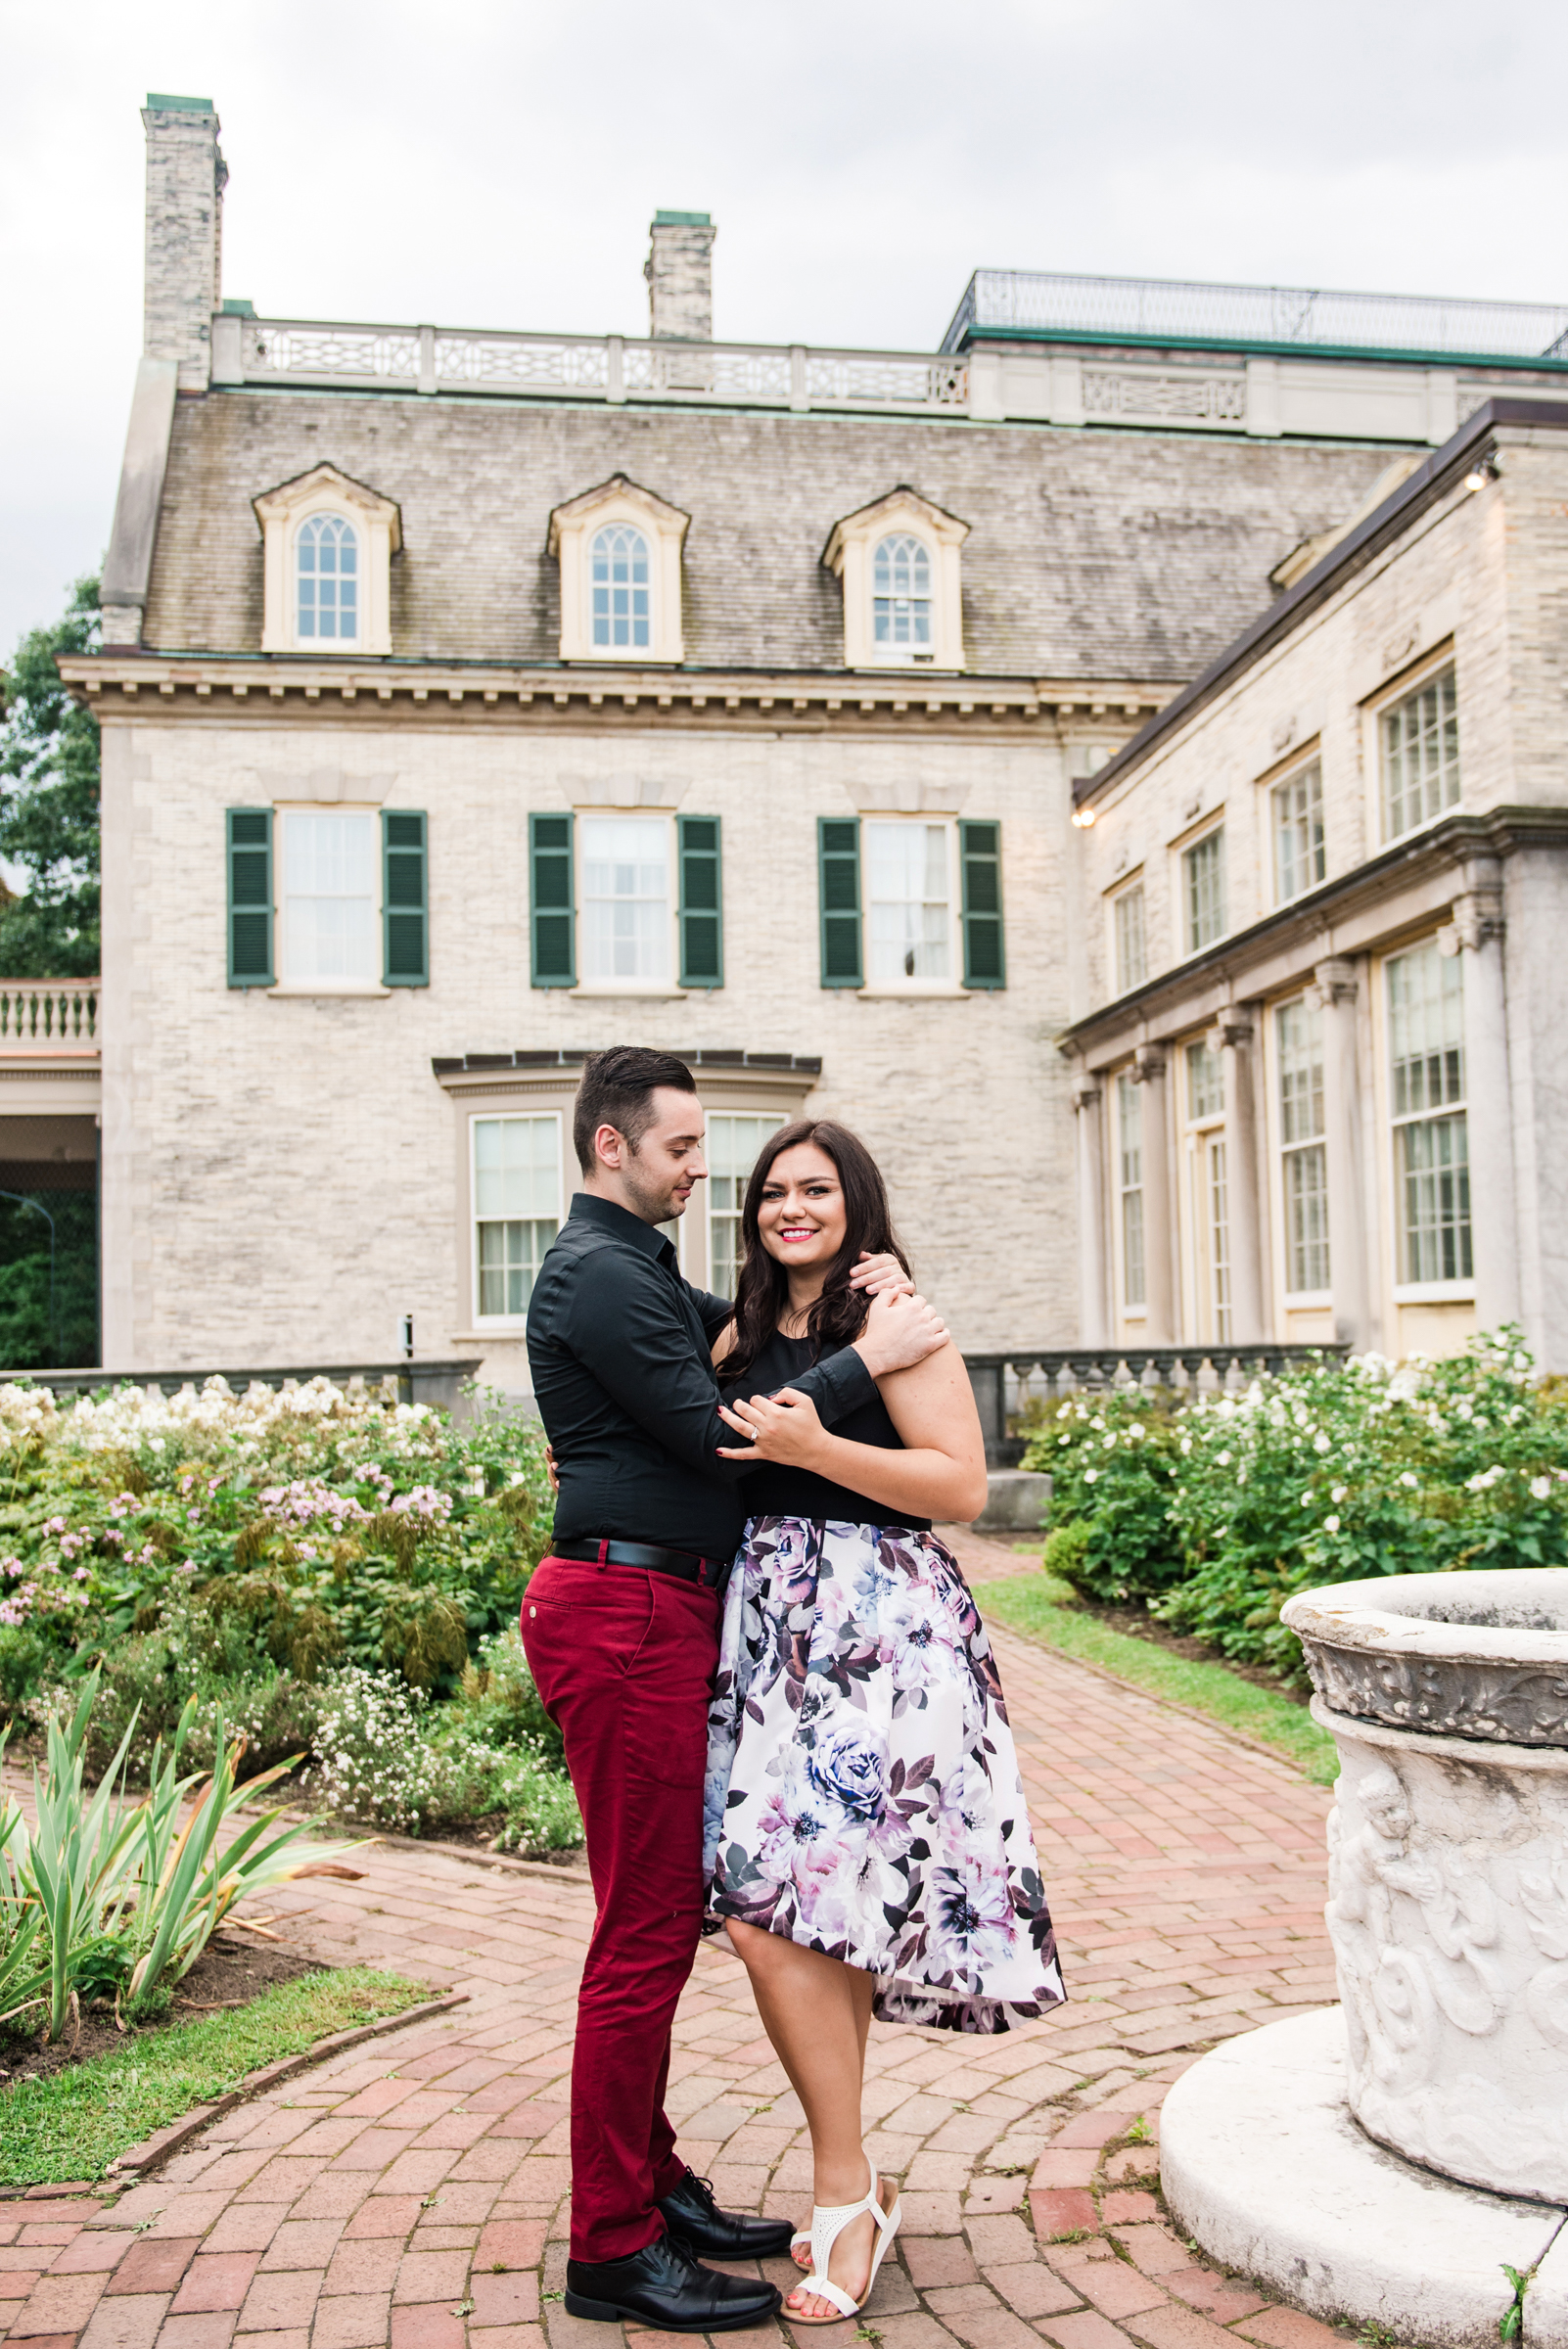 George_Eastman_House_Rochester_Engagement_Session_JILL_STUDIO_Rochester_NY_Photographer_DSC_6305.jpg